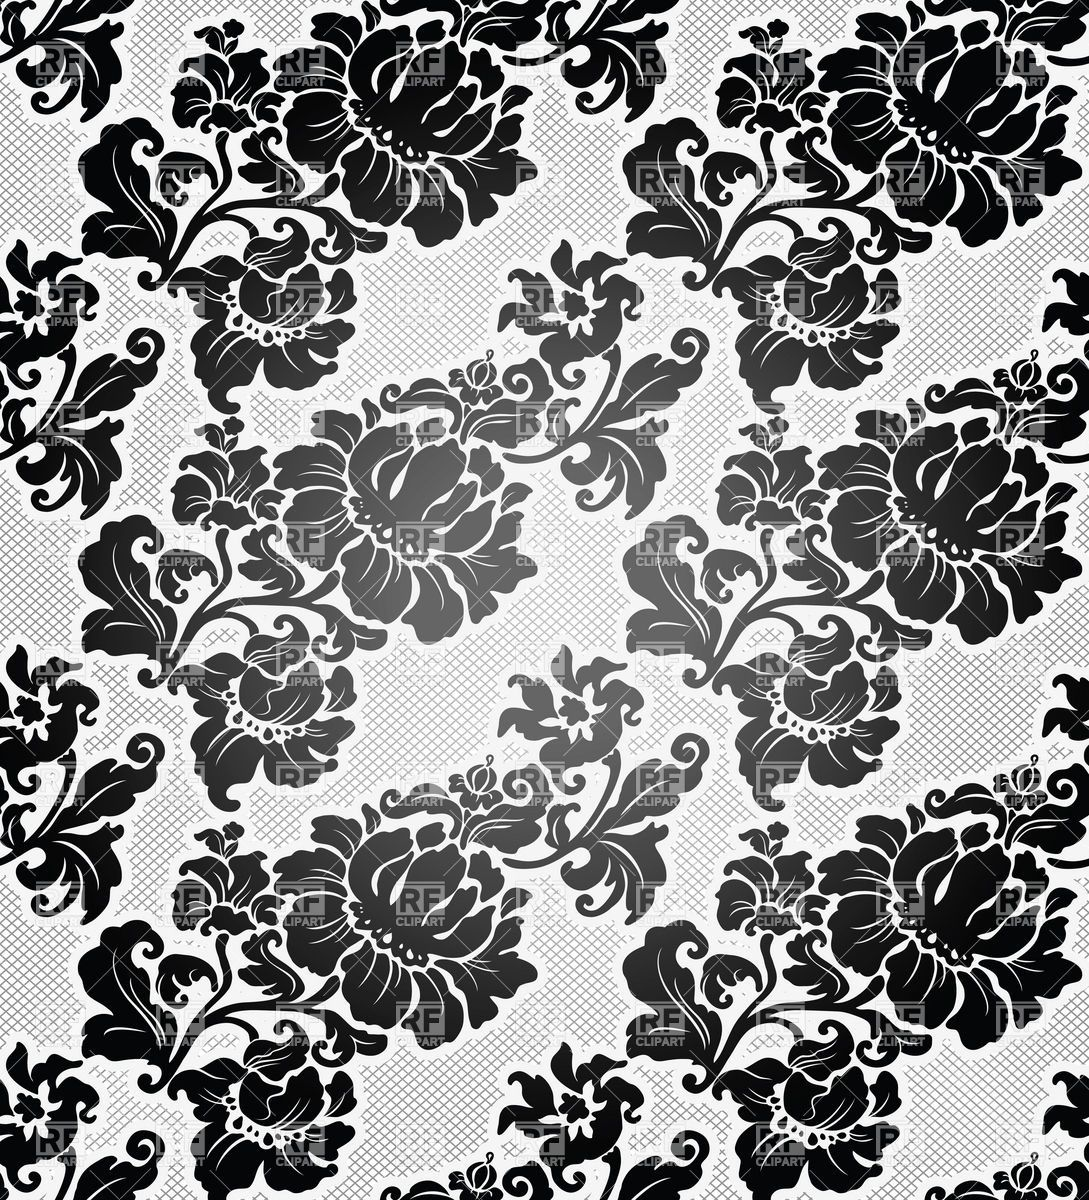 1089x1200 Free download black and white floral wallpaper download the ...